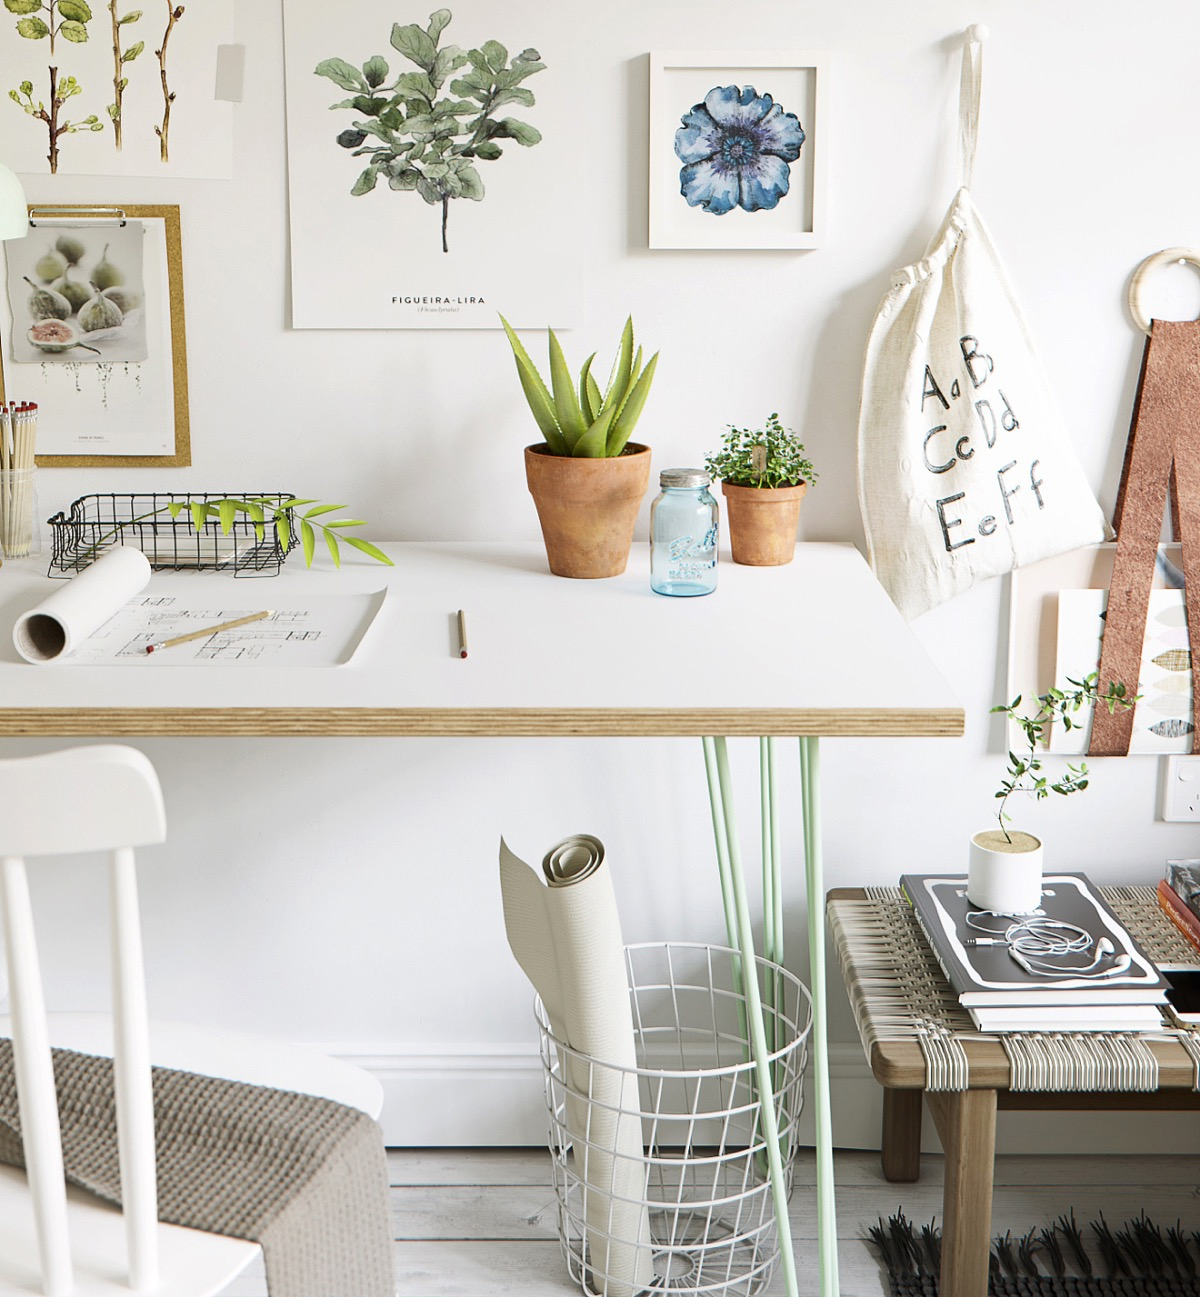 Succulent Planters - Scandinavia meets japan in these minimalist work spaces